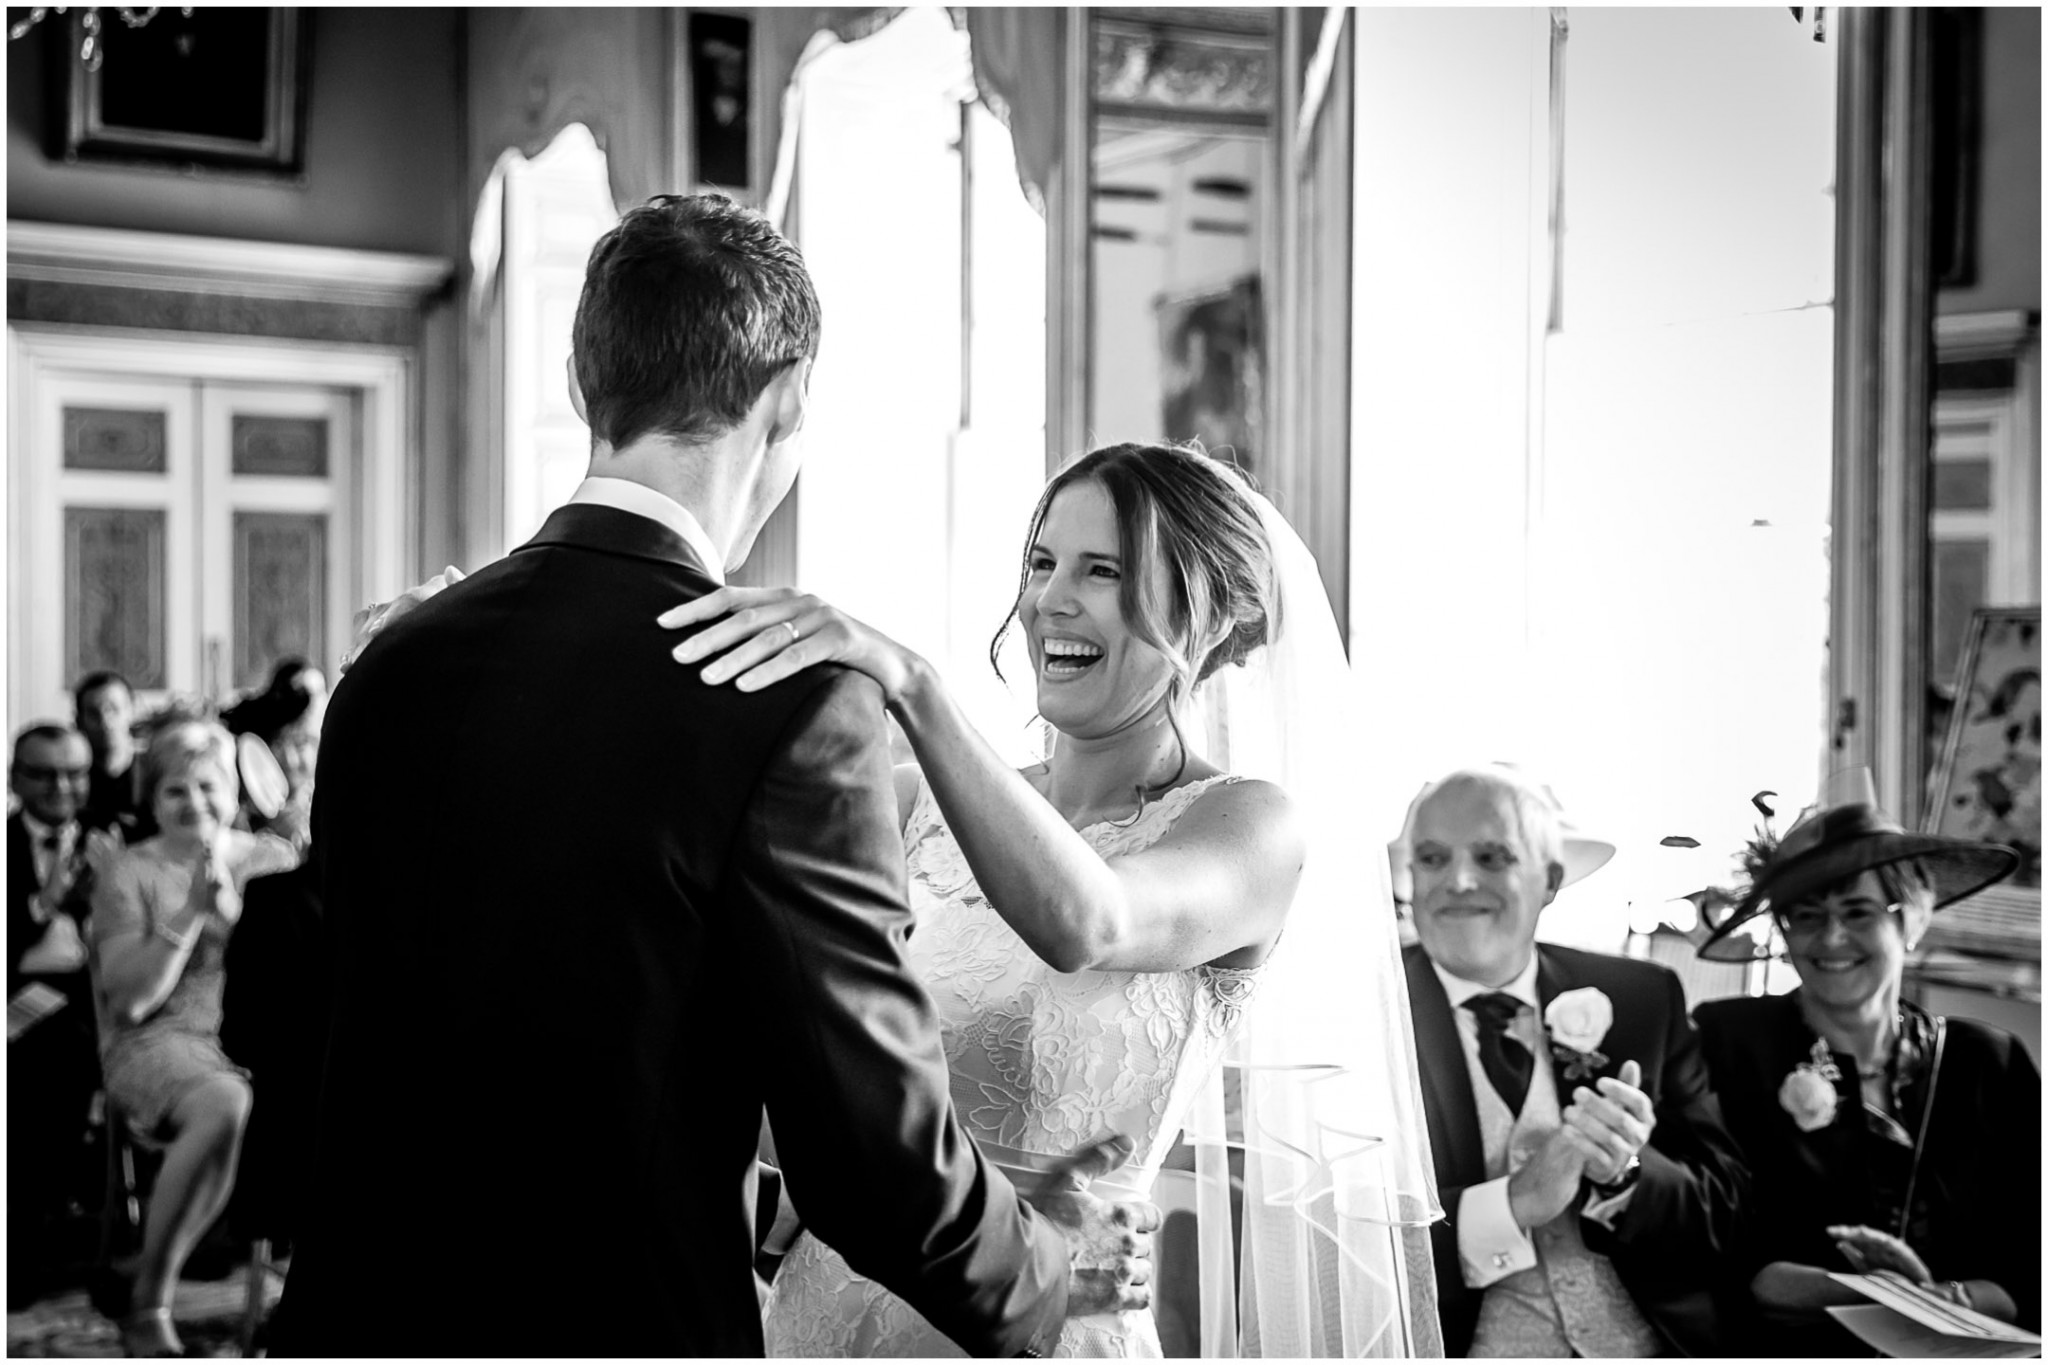 Avington Park Wedding Photographer Bride Laughing in Ceremony